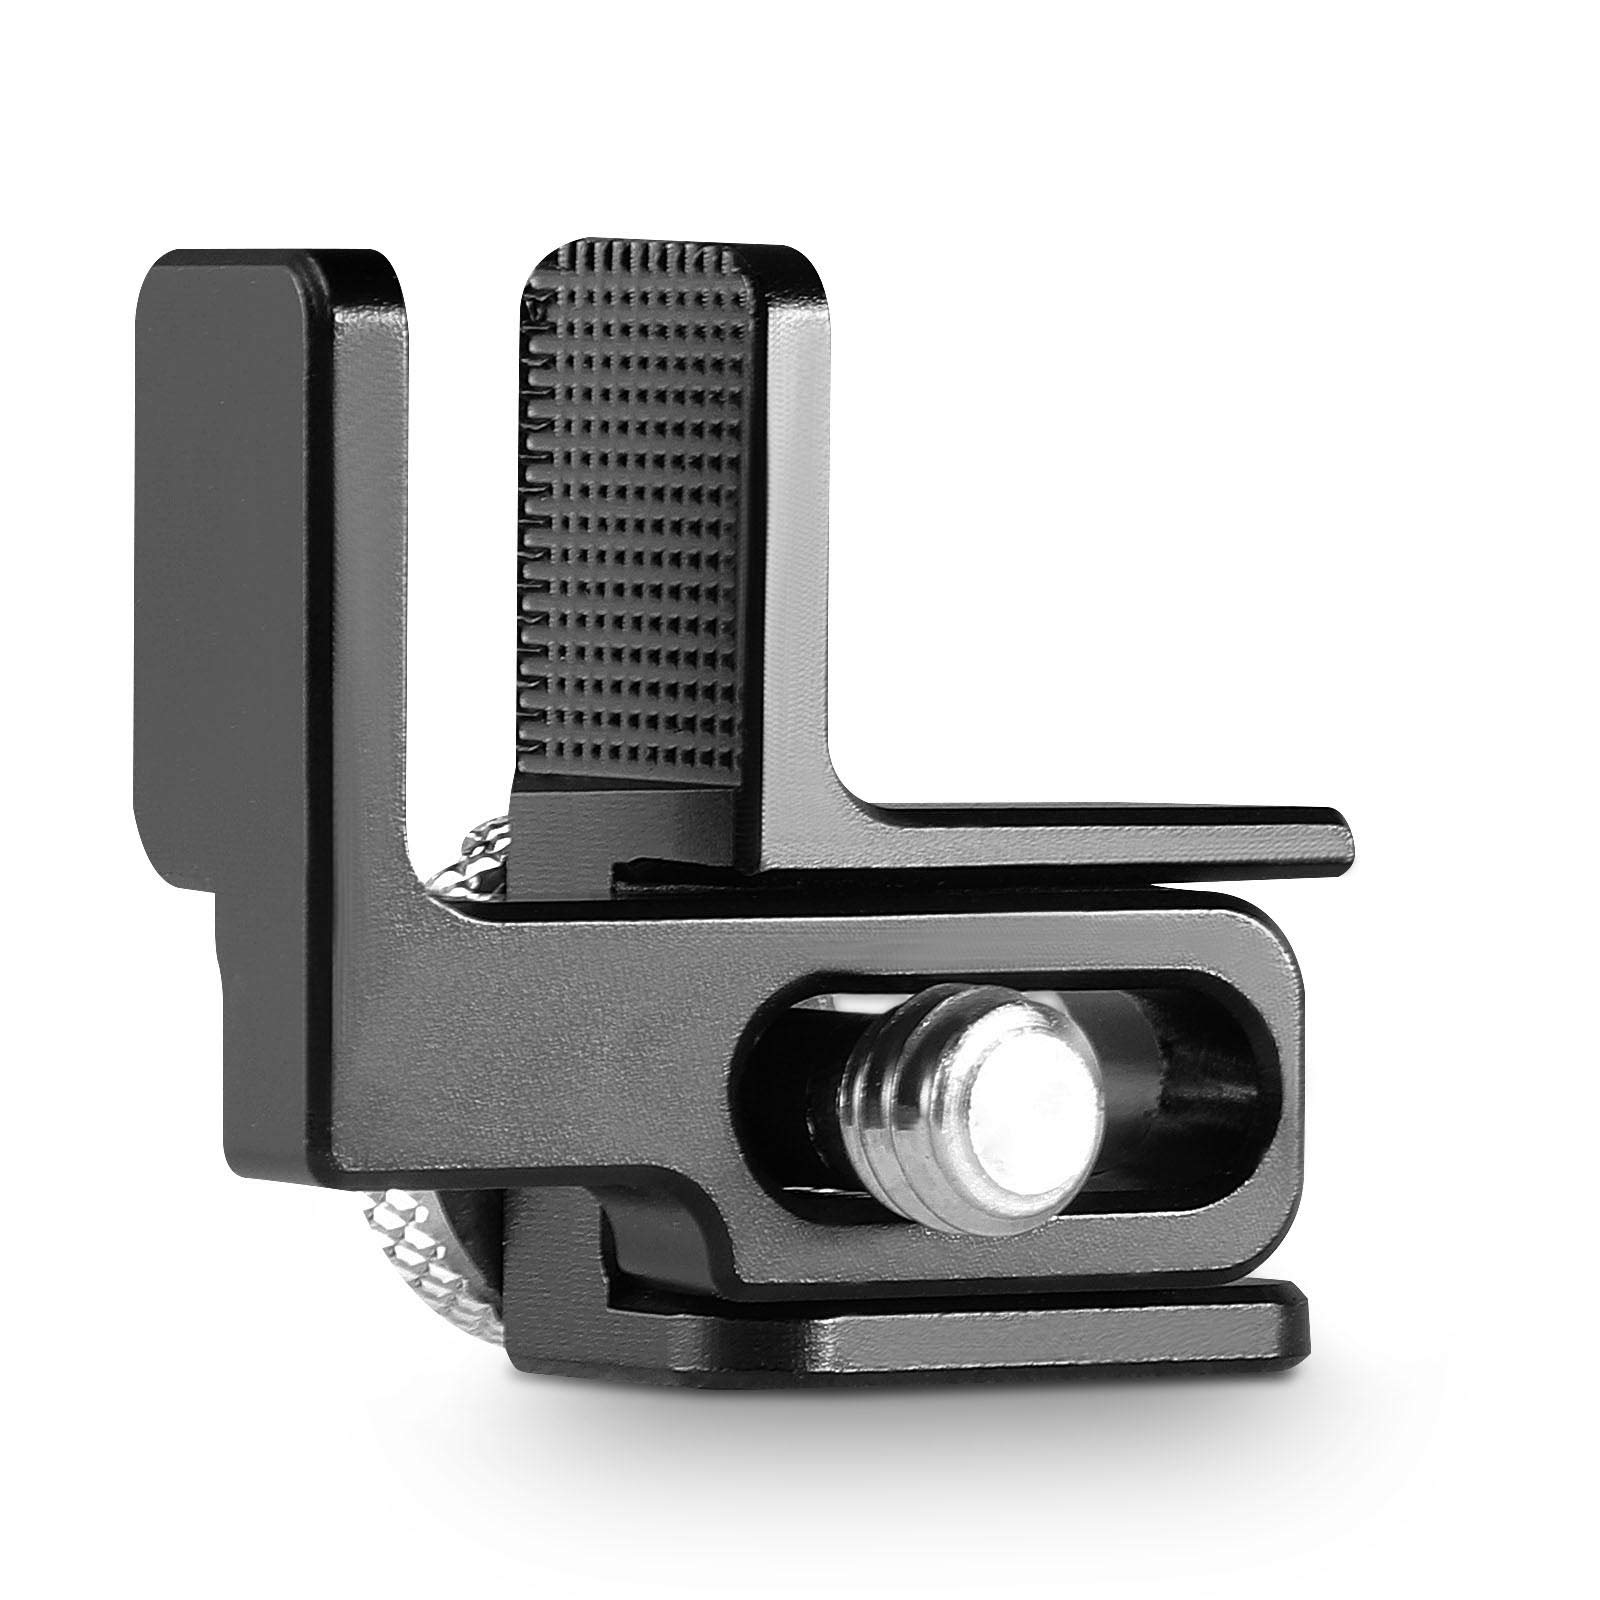 SMALLRIG 1693 HDMI Cable Clamp for Blackmagic Video Assis...